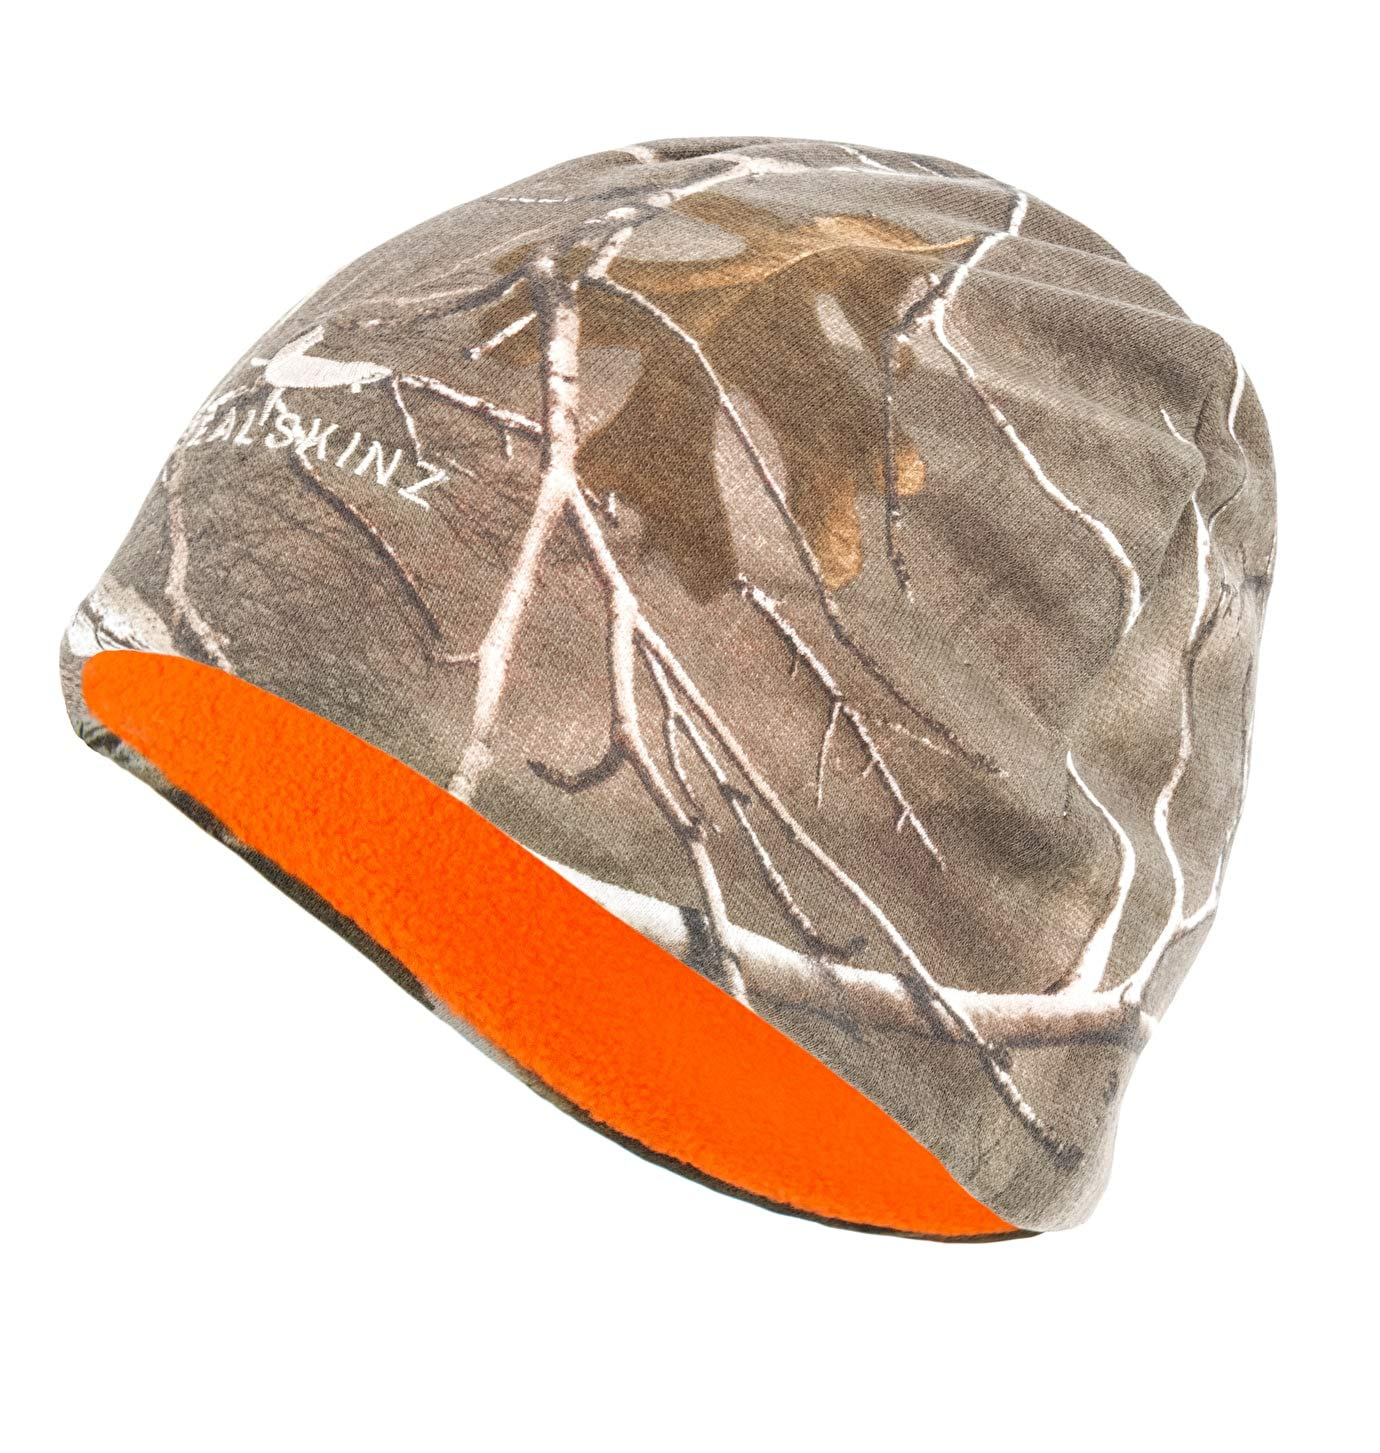 SEALSKINZ Unisex Waterproof Cold Weather Realtree Xtra Camo Reversible Beanie, Realtree/Beige/Orange, Large/X-Large by SEALSKINZ